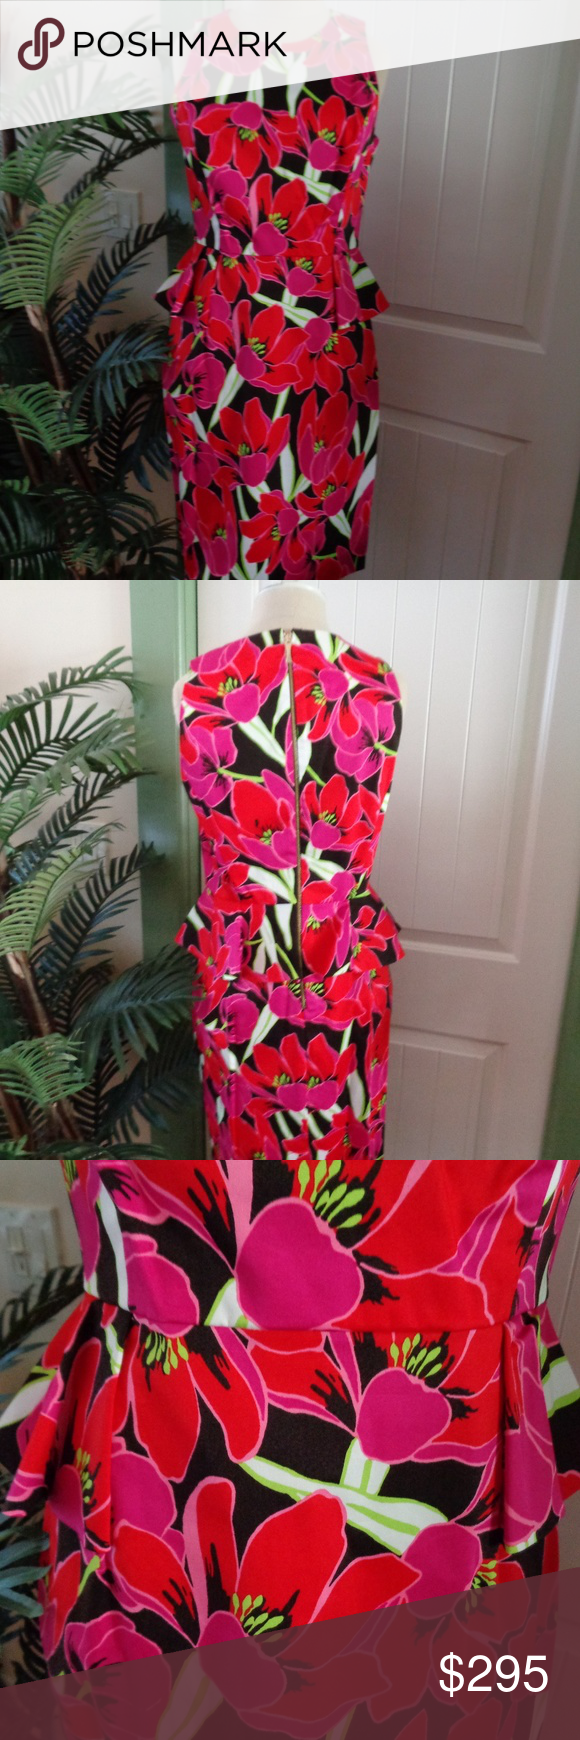 KATE SPADE Tropical Peplum Sheath Dress NWT Pretty Stunning Kate Spade New York Tropical Peplum Sheath Dress. Size 6. New with tag and original bag.  Made of cotton and elastane for a smooth fit. Gorgeous red and pink flowers adorn a black and white background. Exposed back zipper. Straight hem. Flouncy peplum at waist. Kate Spade Dresses #katespadewallpaper KATE SPADE Tropical Peplum Sheath Dress NWT Pretty Stunning Kate Spade New York Tropical Peplum Sheath Dress. Size 6. New with tag and orig #katespadewallpaper